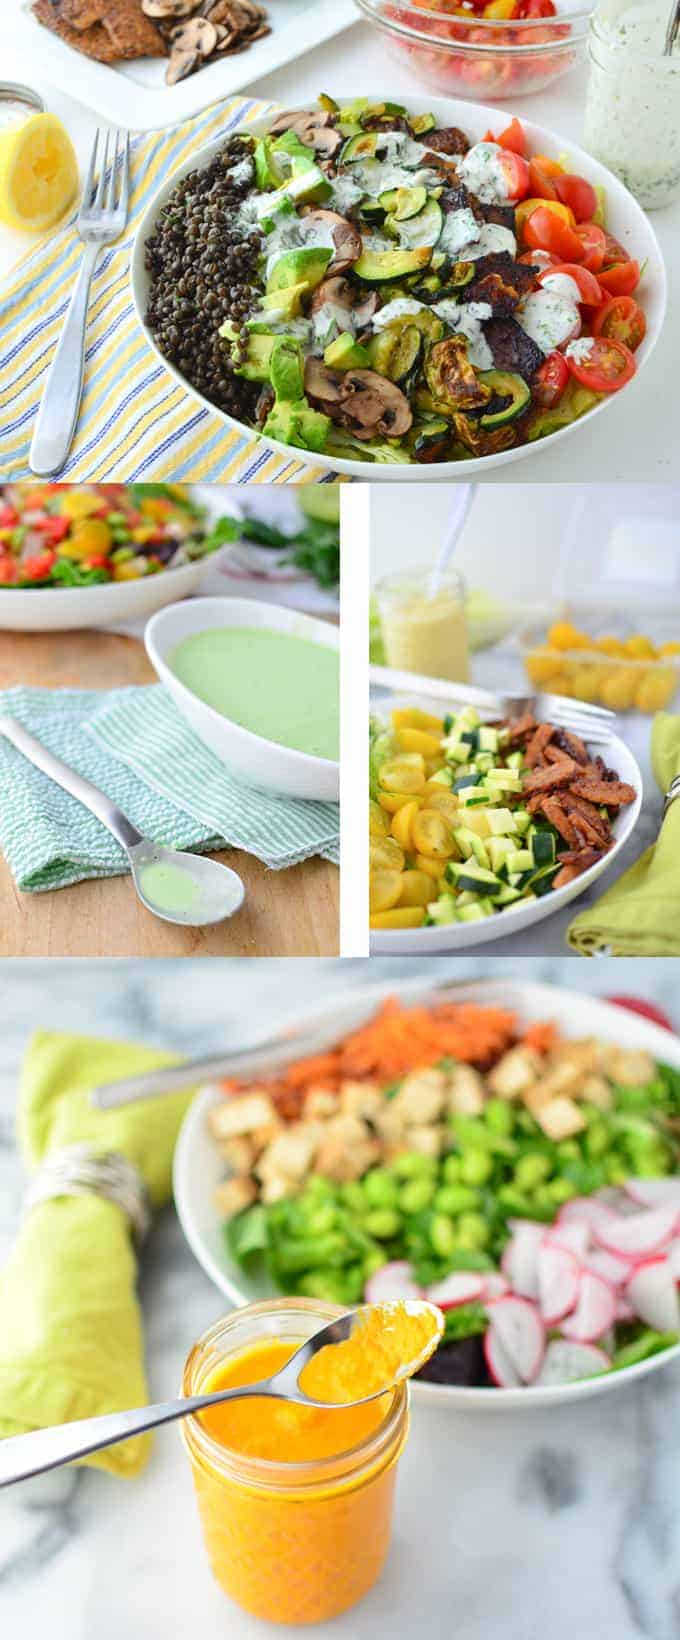 4 low-fat salad dressings! Carrot-Miso, Spicy-Herb, Curry-Hummus and Dilly-Ranch